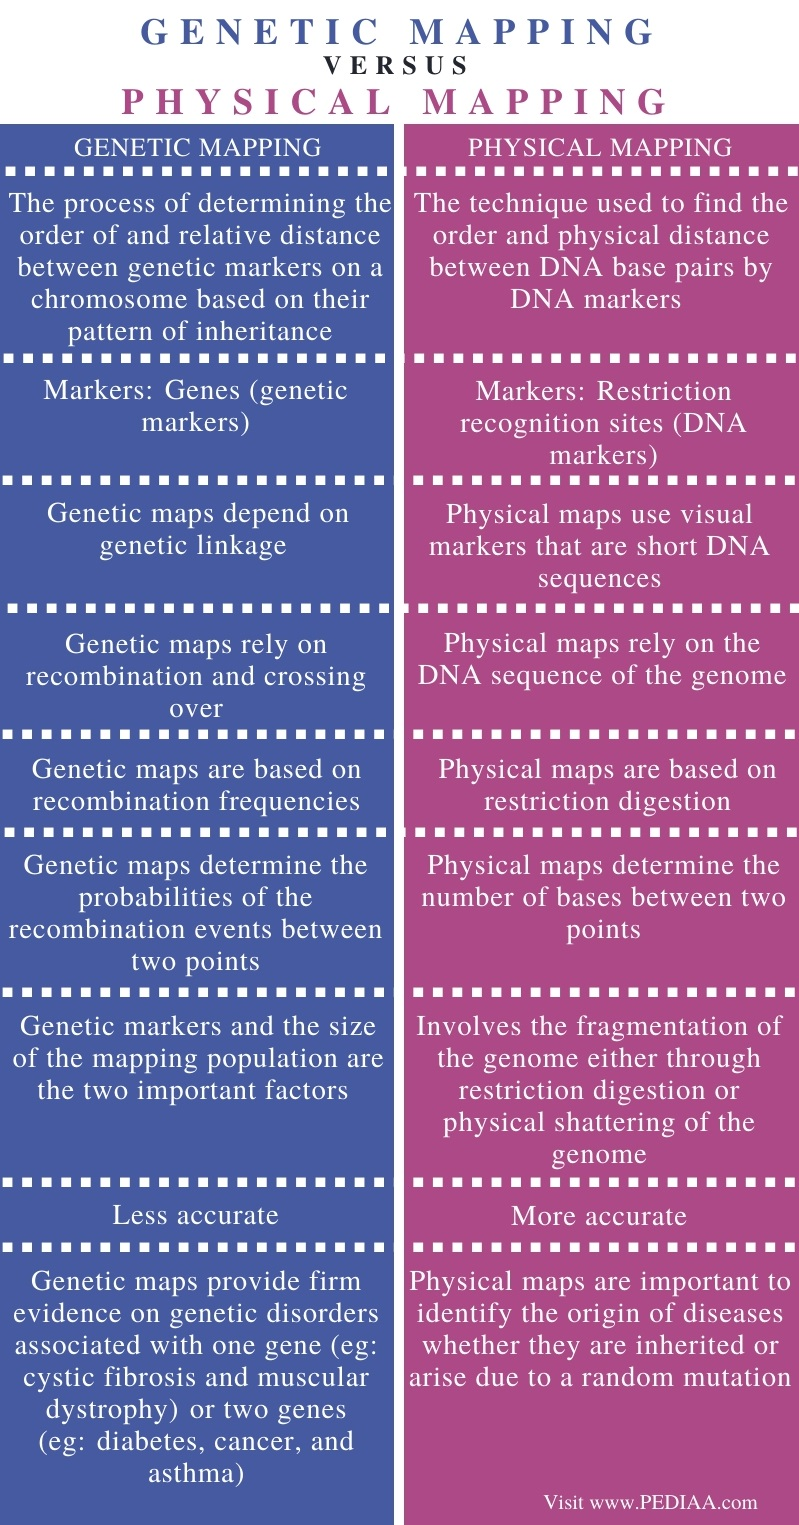 Difference Between Genetic and Physical Mapping - Comparison Summary